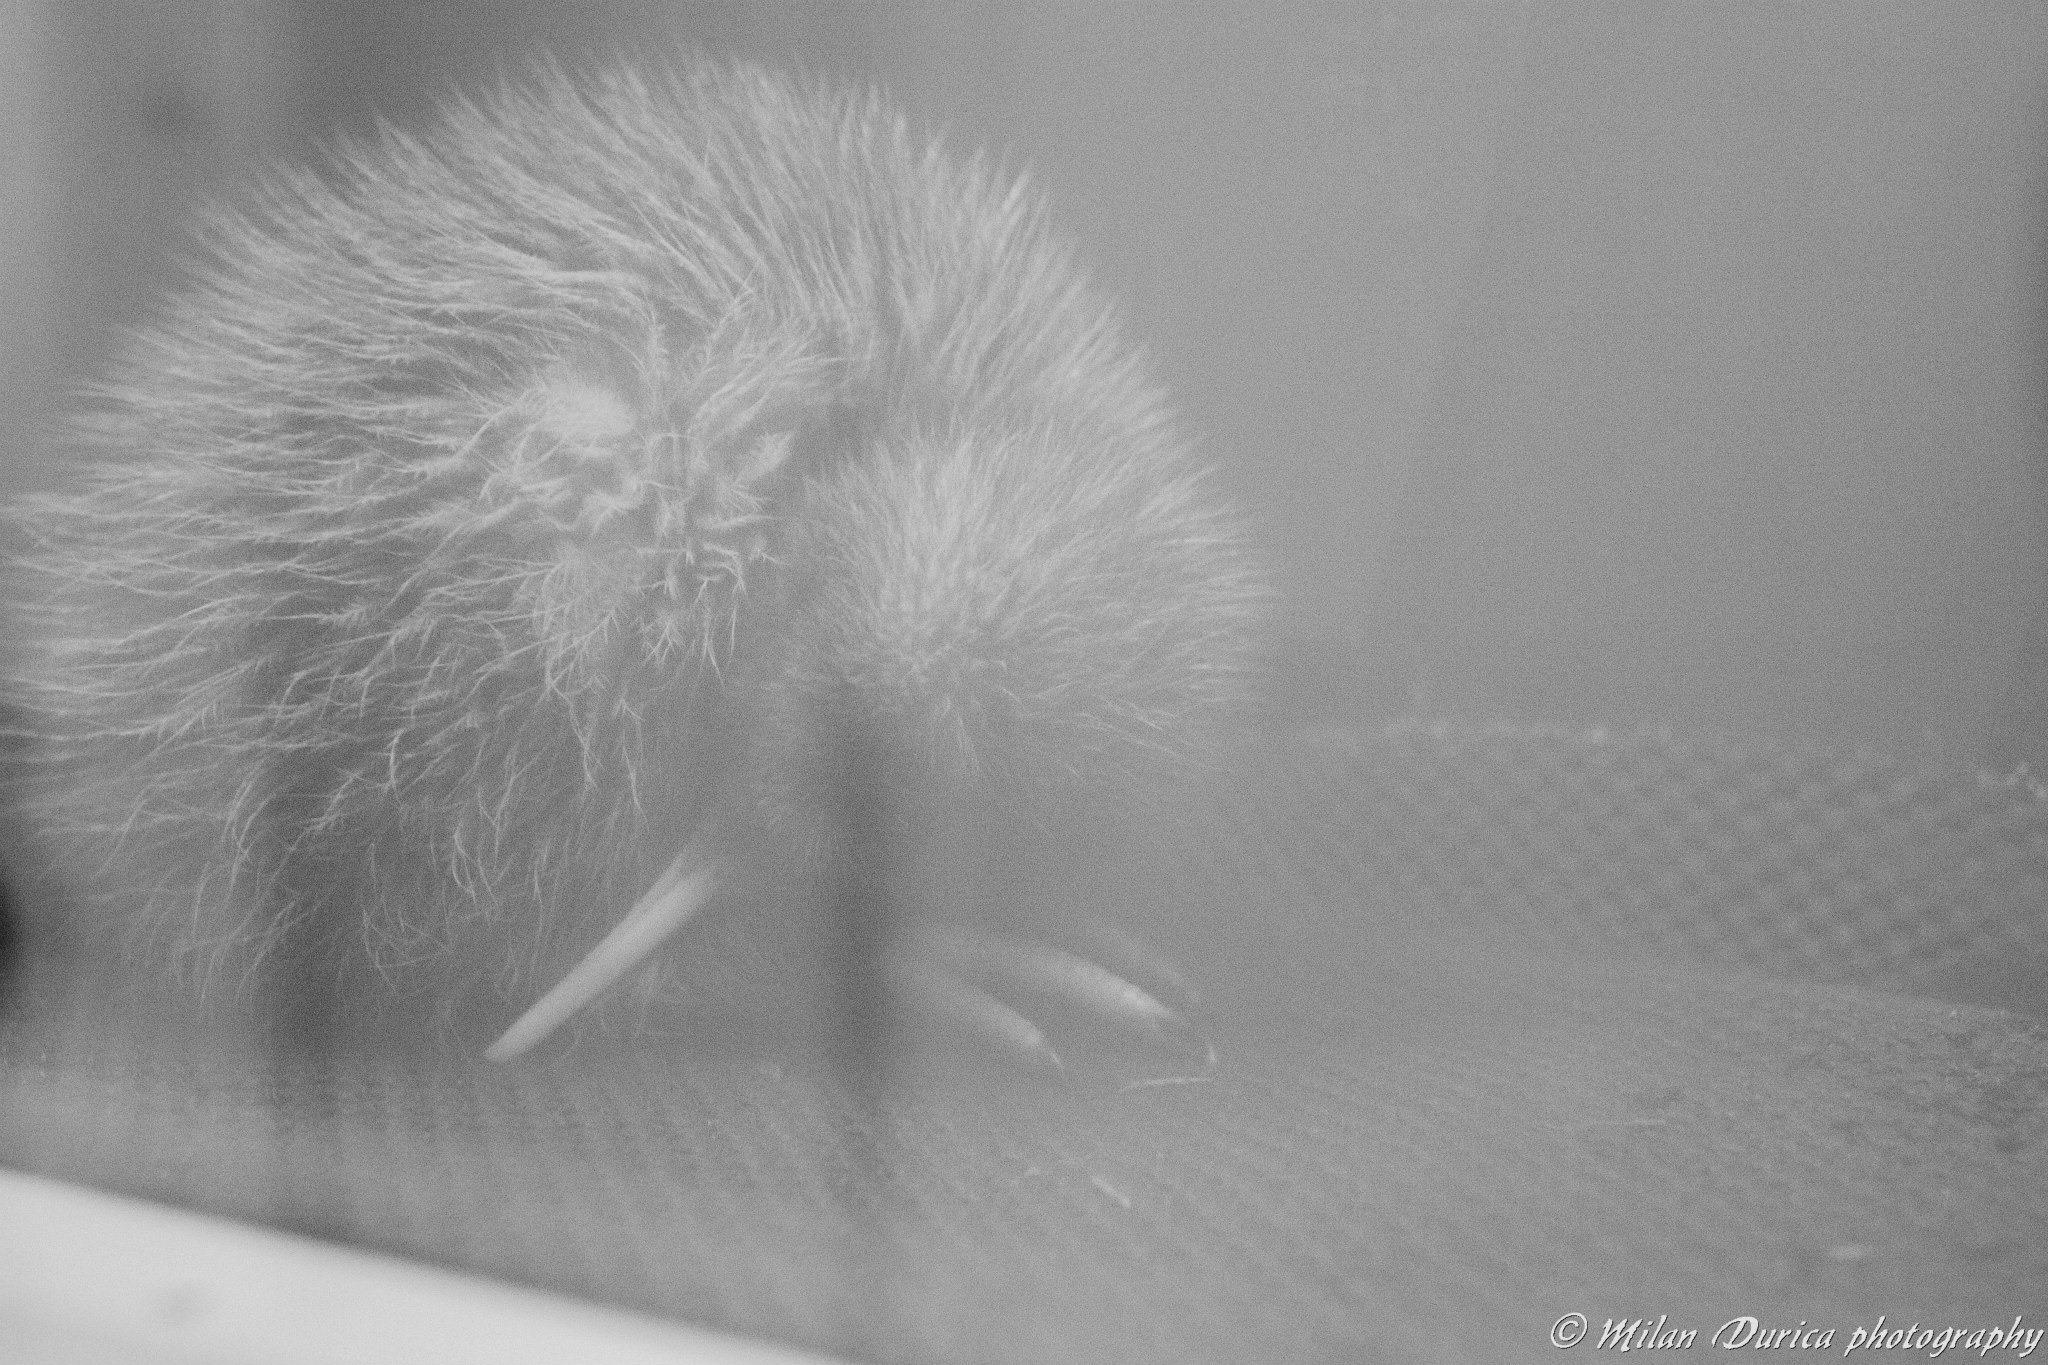 Mláďa kiwi vo West Coast Wildlife Center